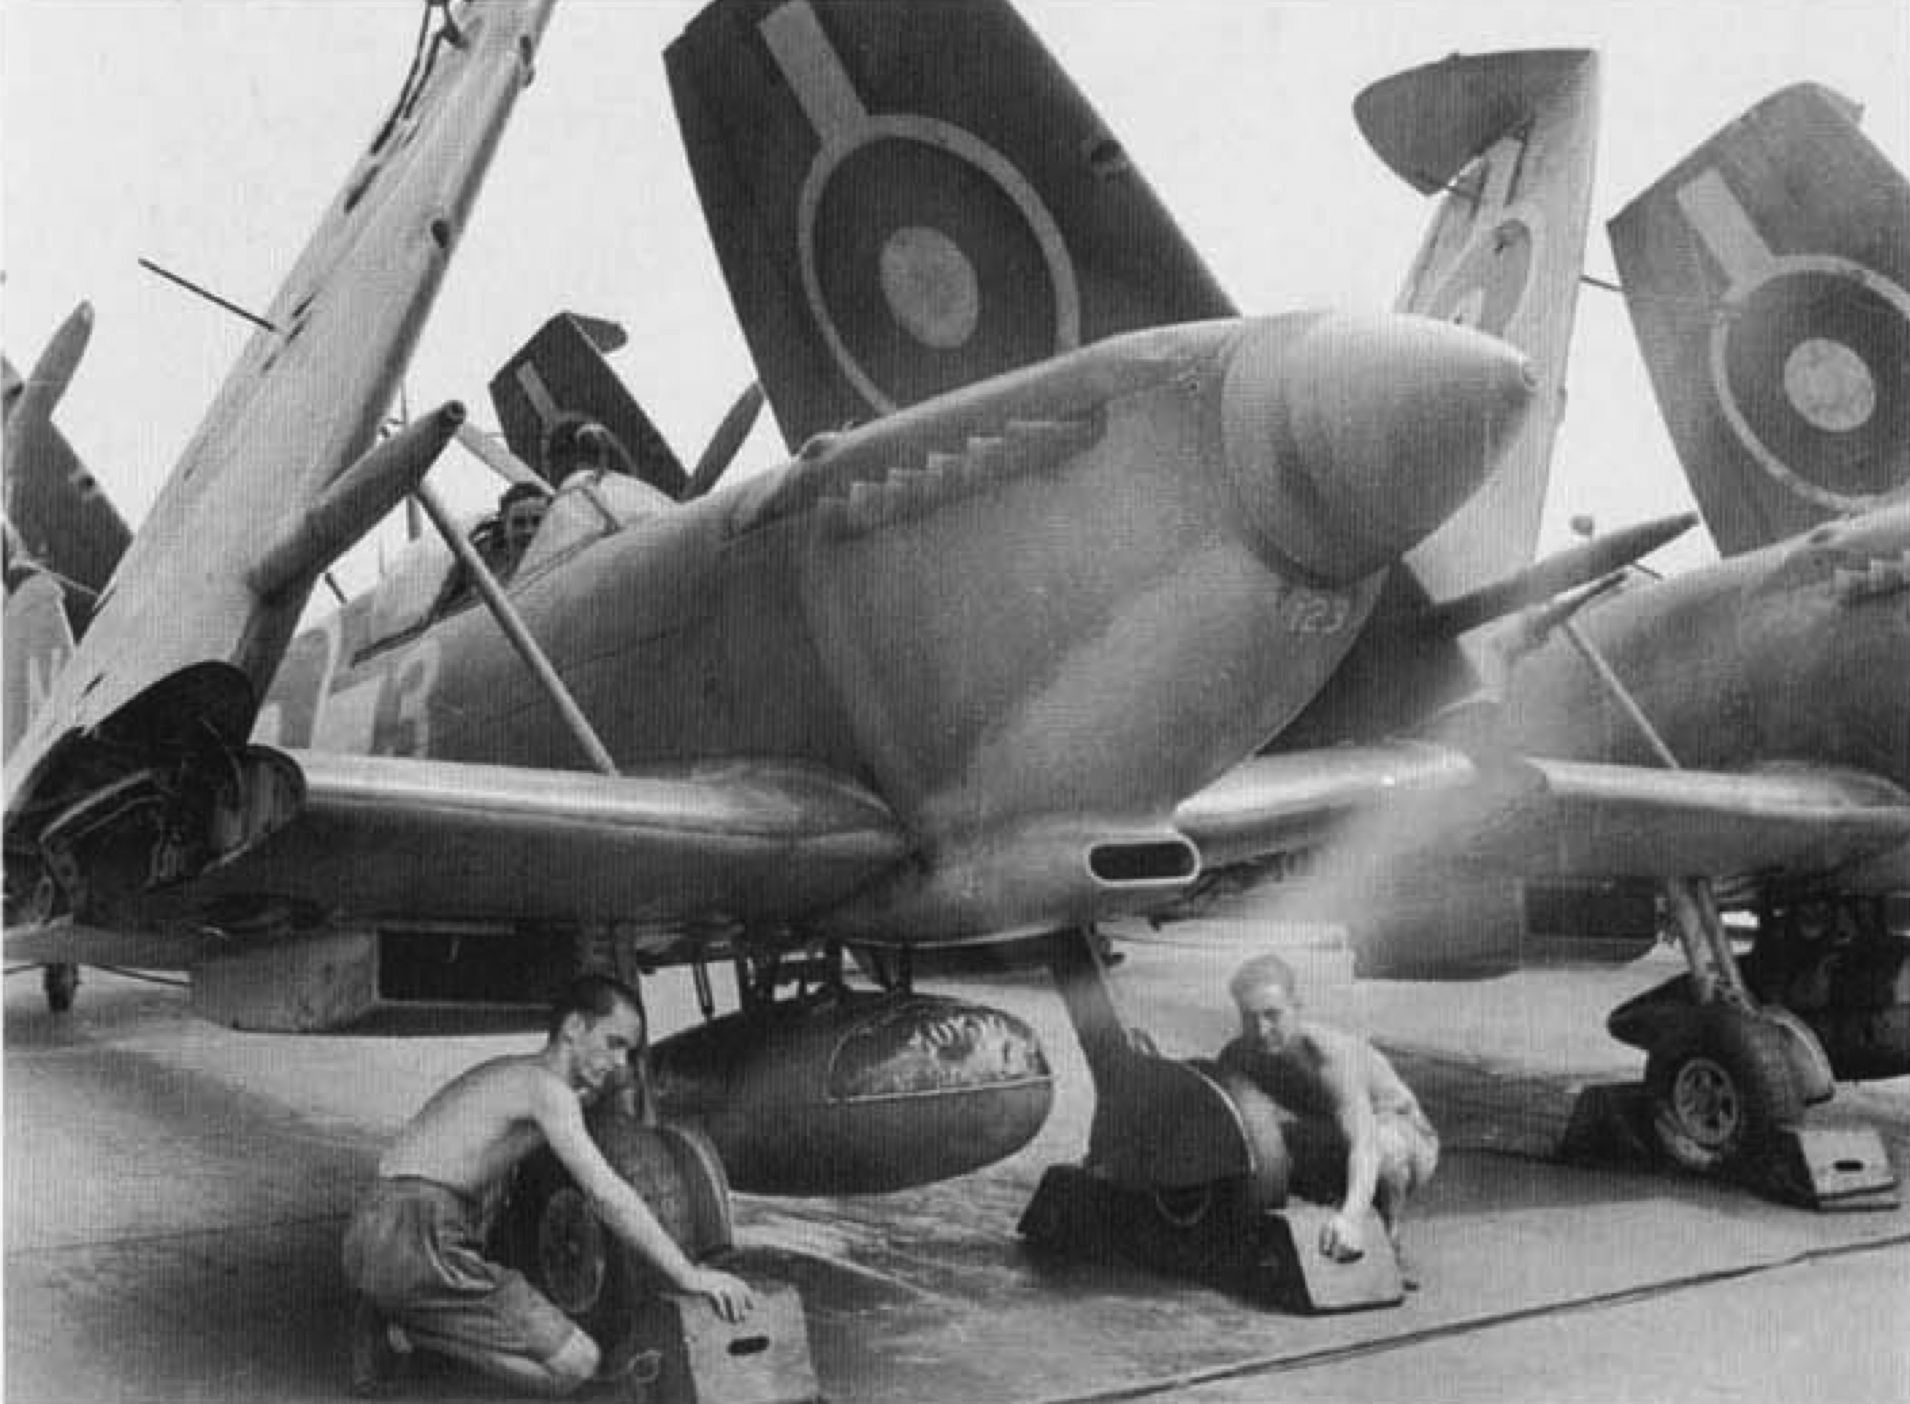 A Royal Navy Fleet Air Arm Seafire fighter being warmed up on board the aircraft carrier HMS Implacable while ratings hold chocks under the wheels. The 89 gallon ex P-40 Warhawk drop tank is prominent.